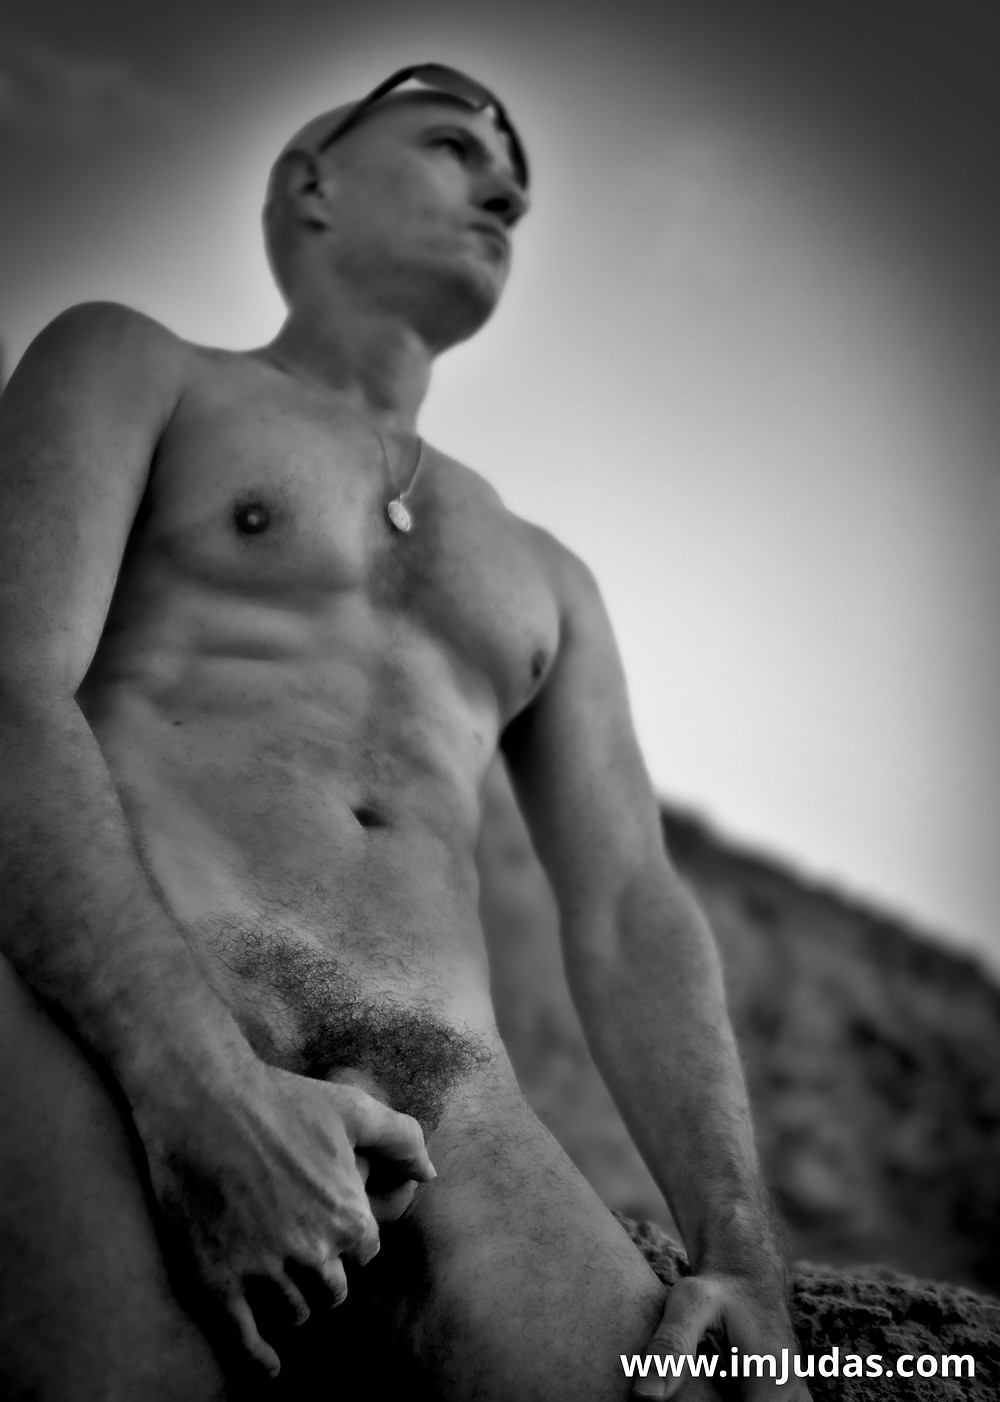 cock naked model male nude gay sex